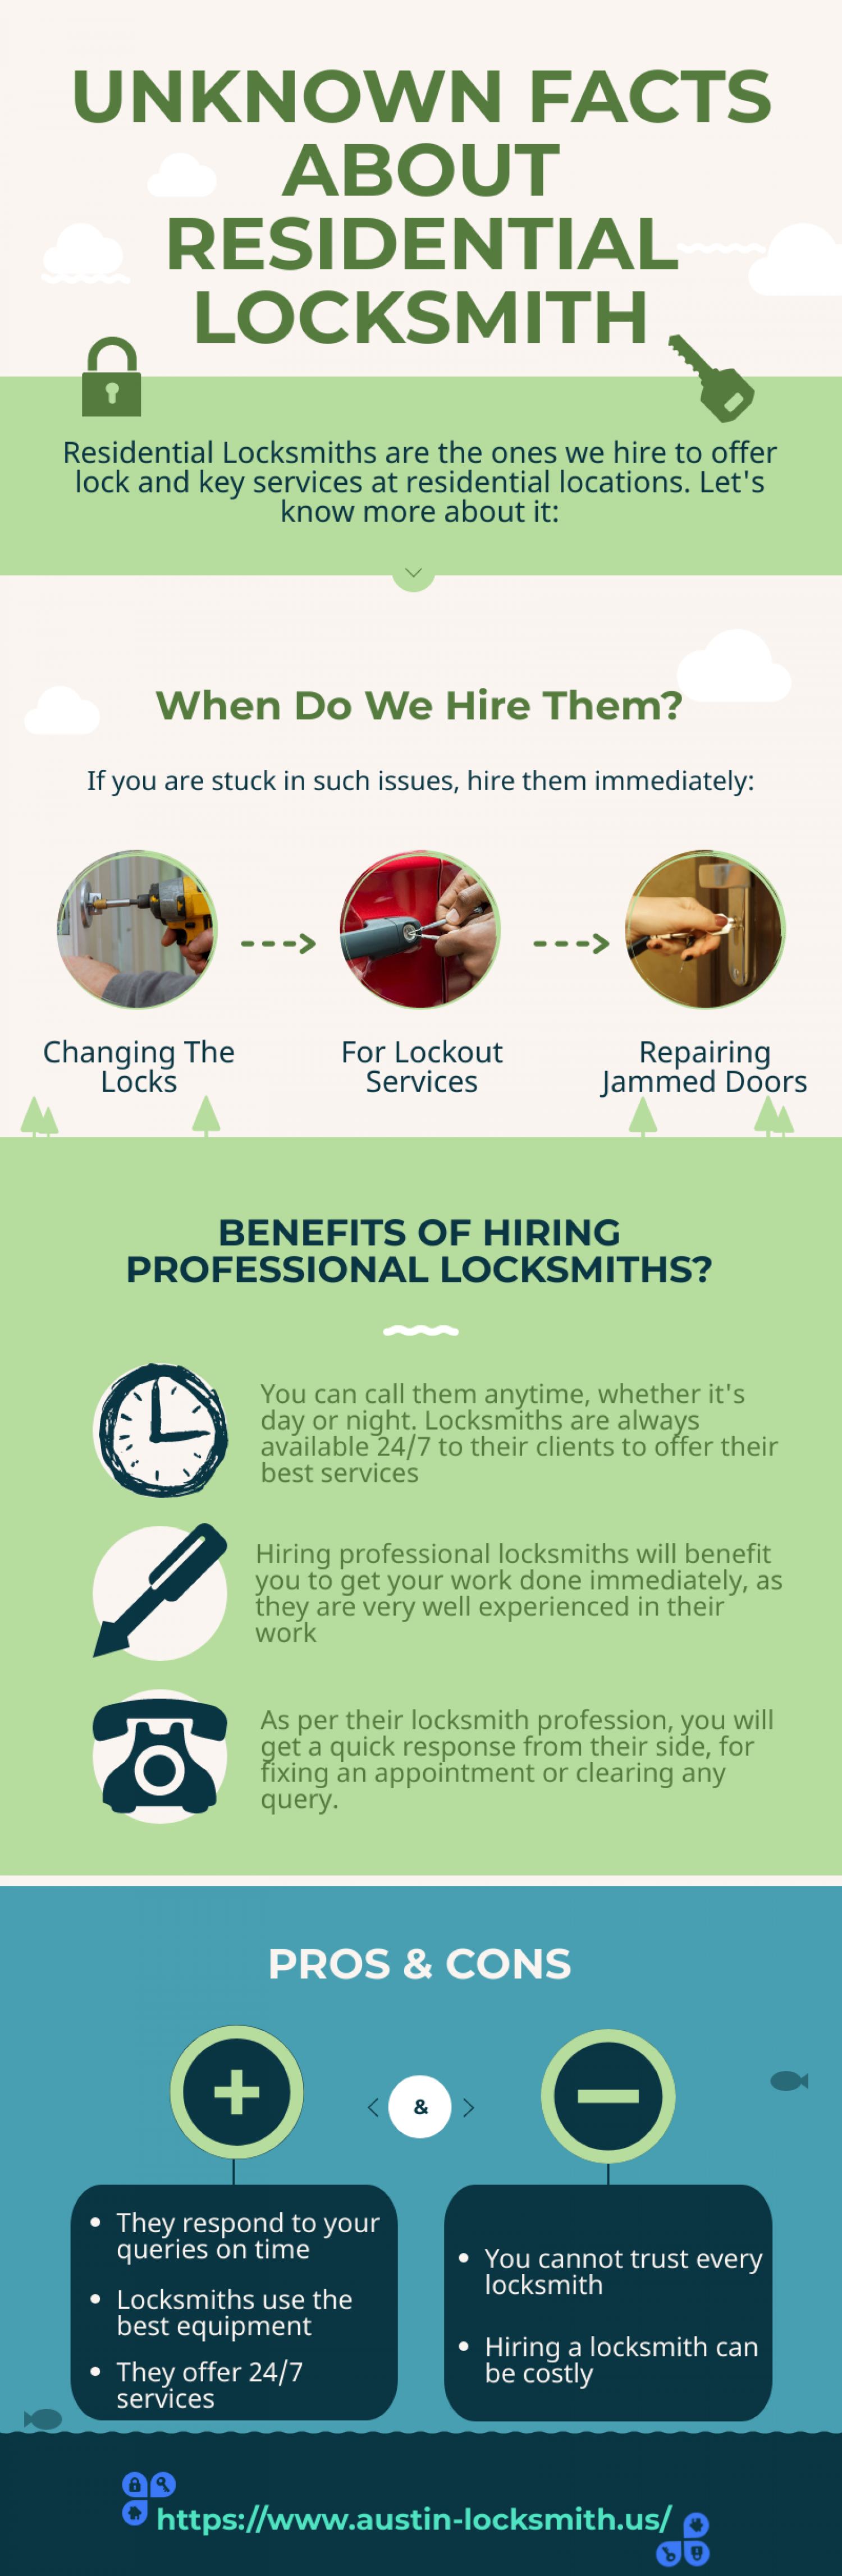 UNKNOWN FACTS ABOUT RESIDENTIAL LOCKSMITH Infographic